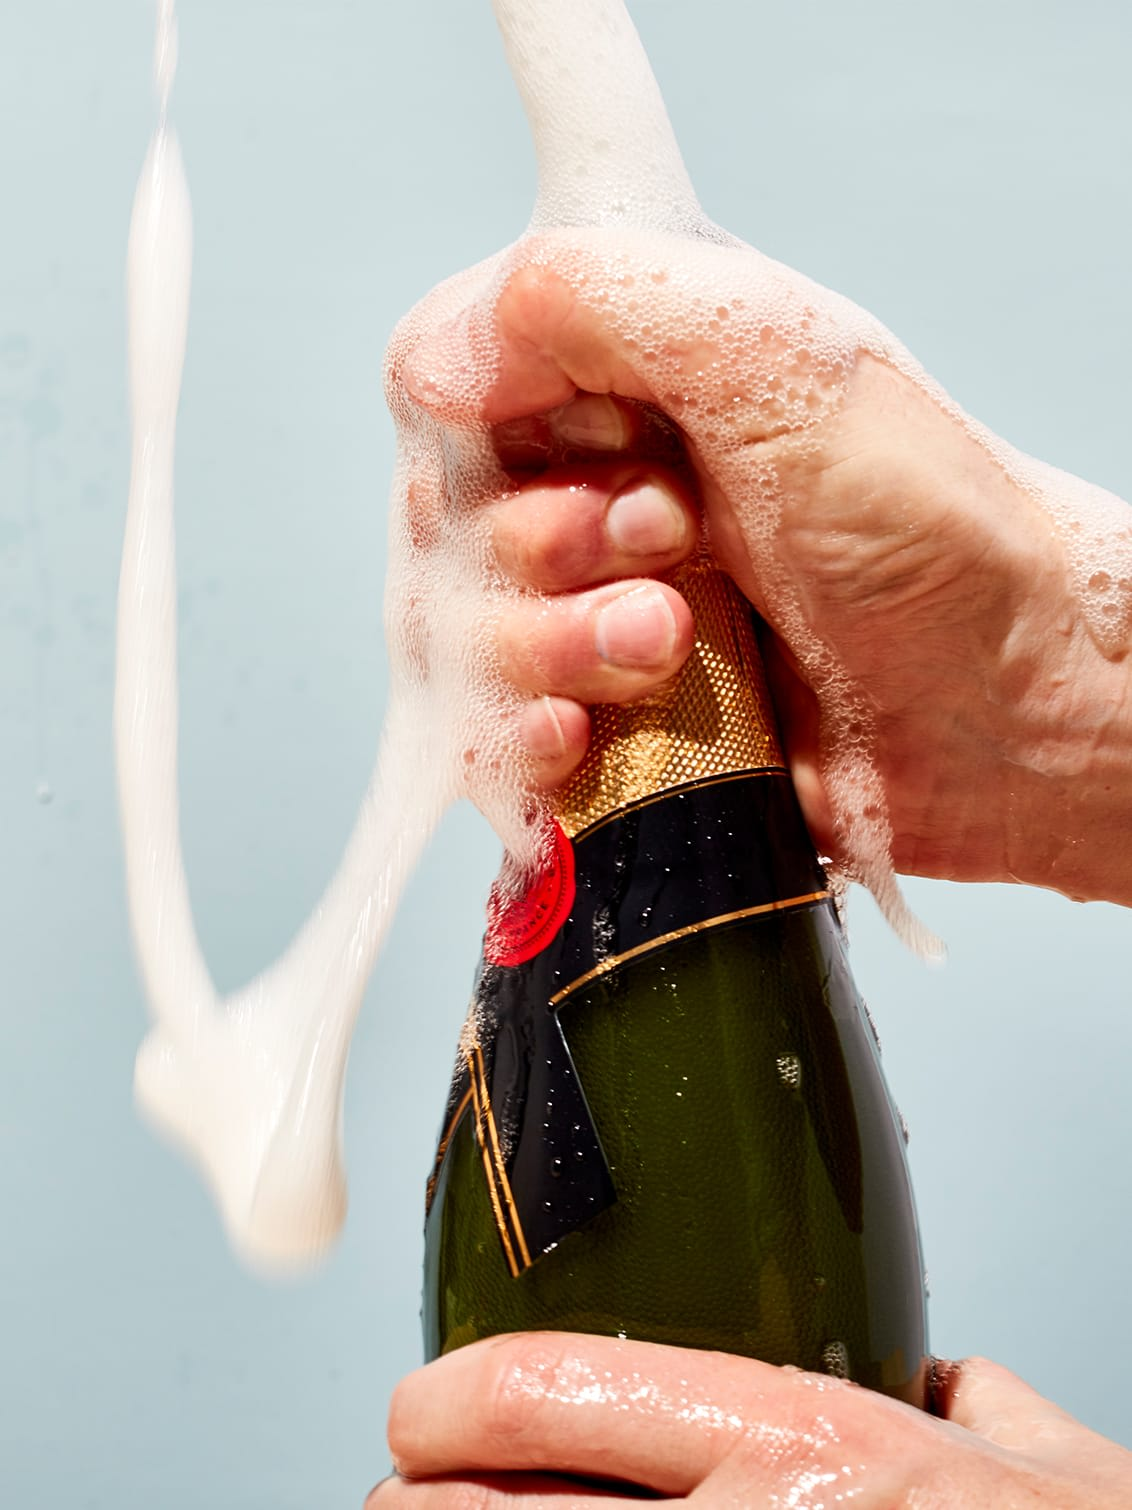 A bottle of champagne suggestively popped by a hand